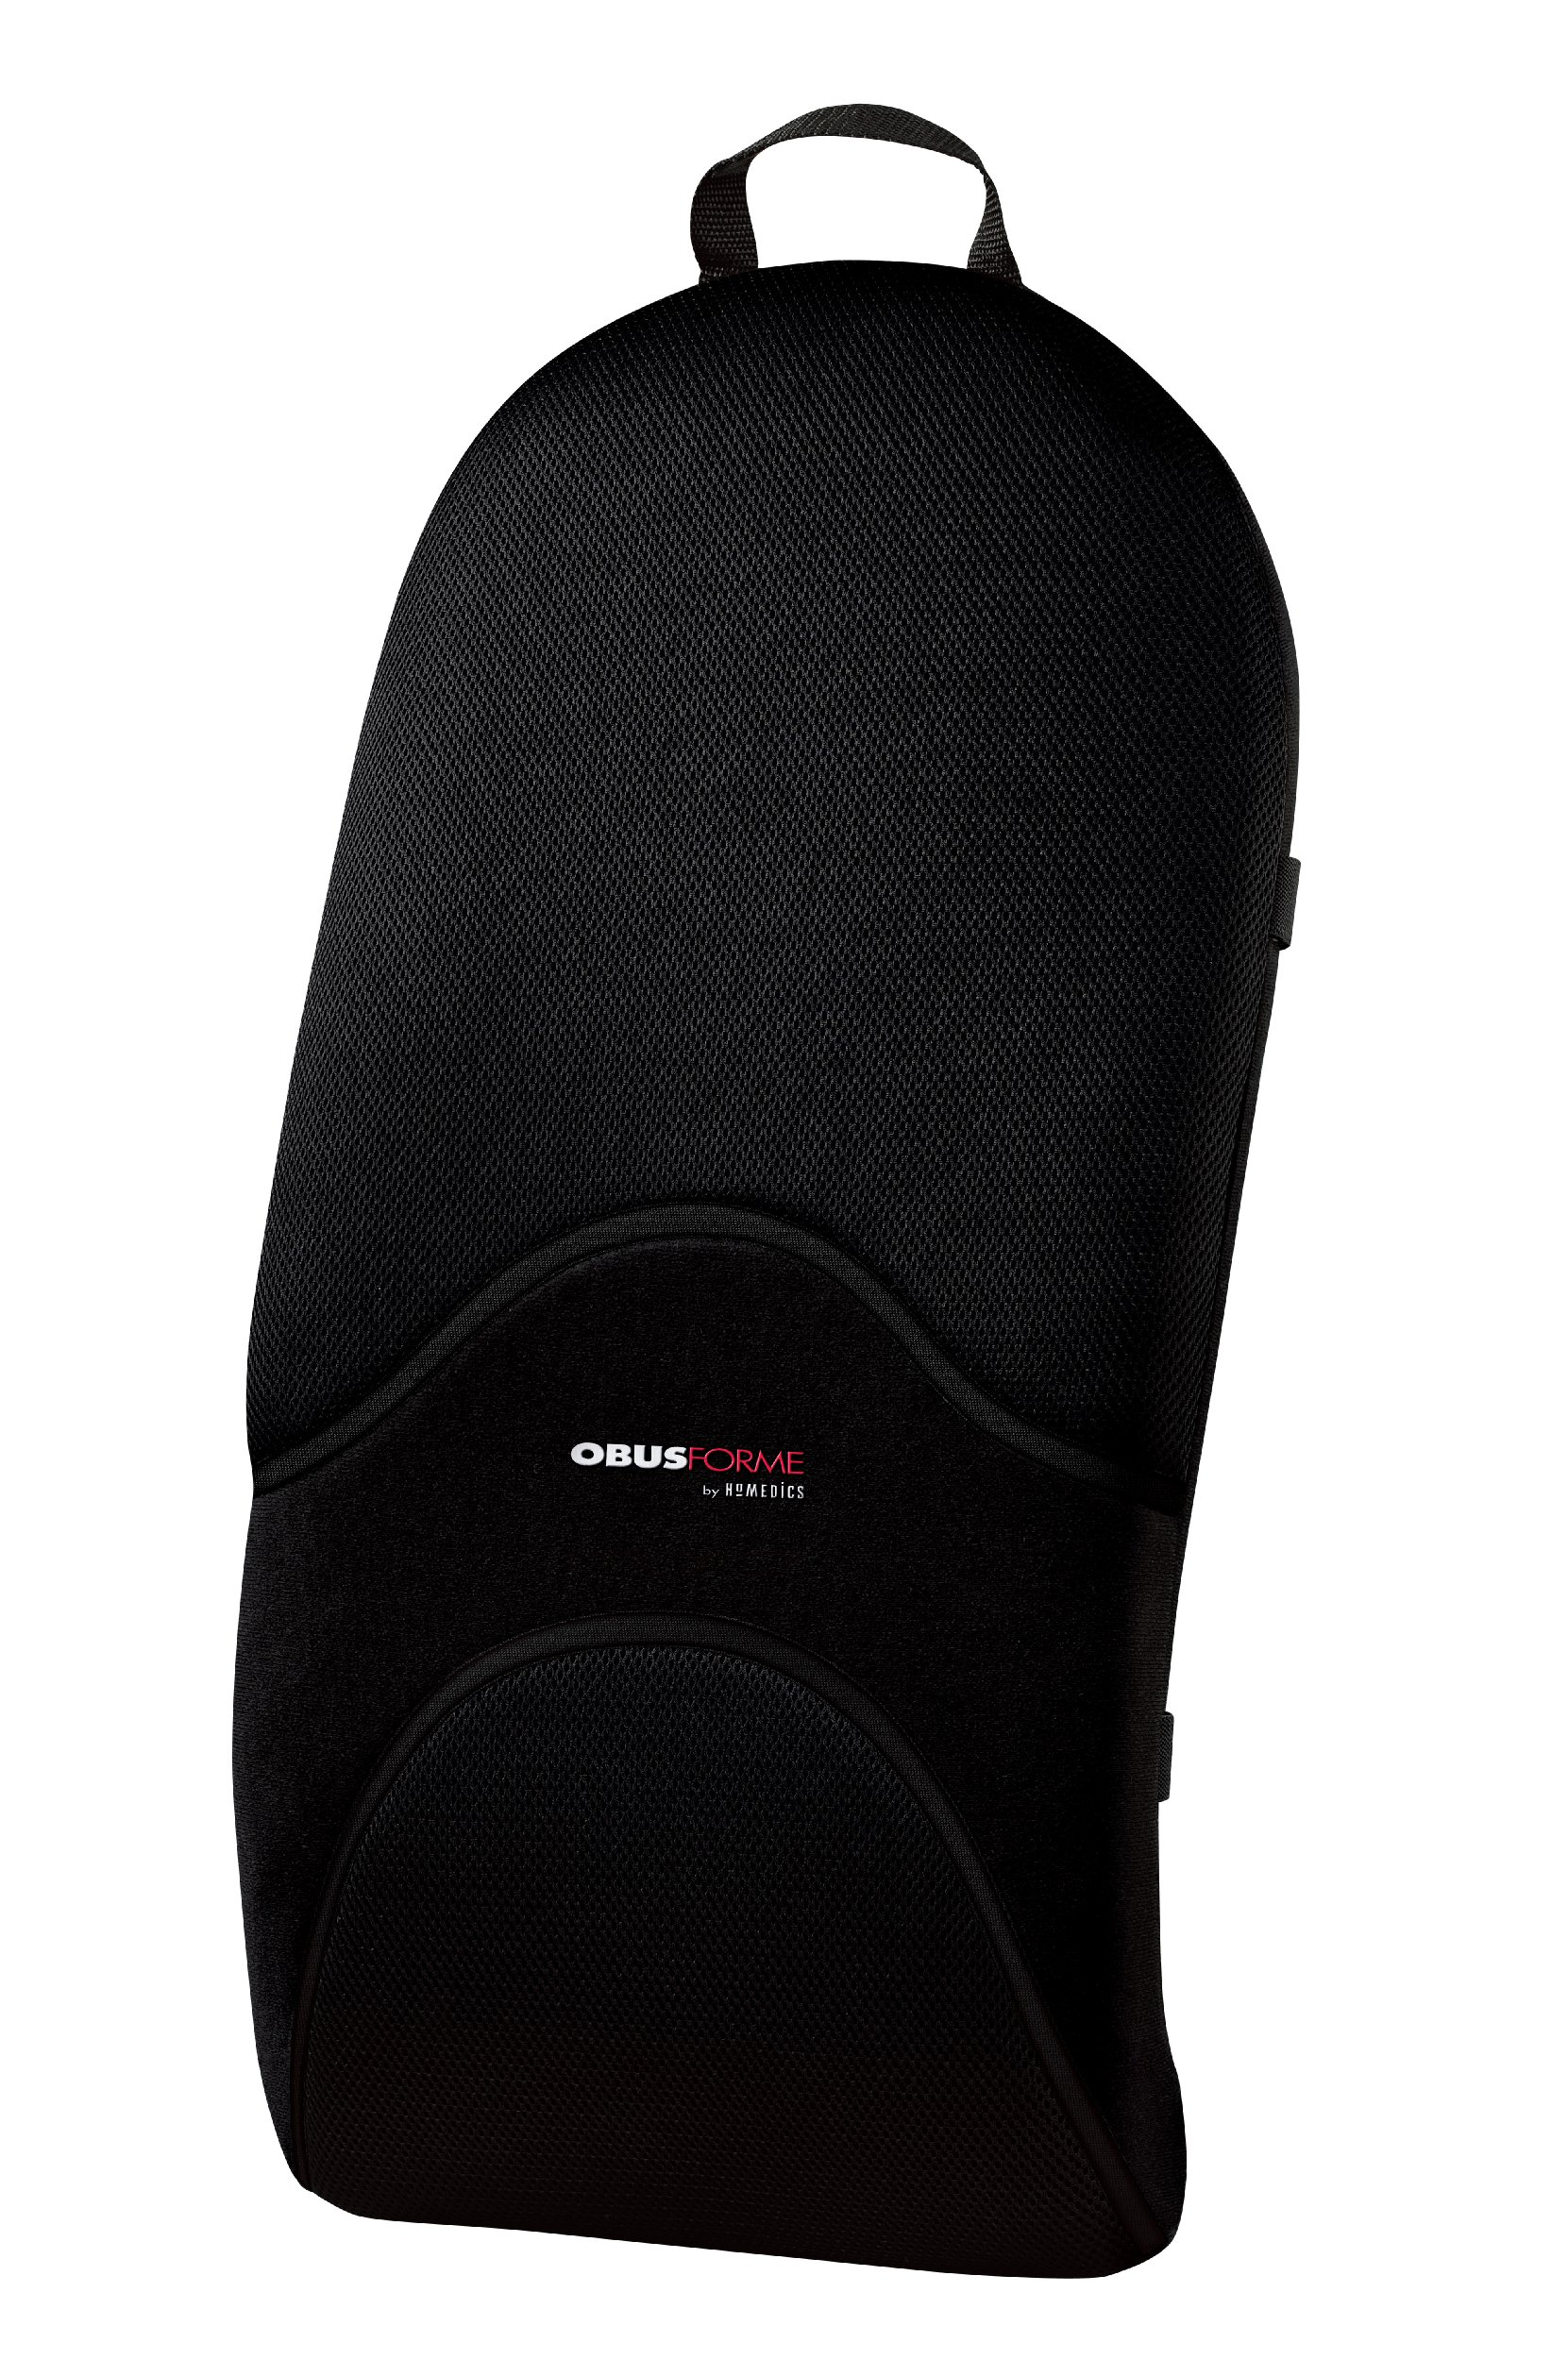 ObusForme by HoMedics OFUF-BLK-LG Ultra Premium Backrest Support, Large by Homedics